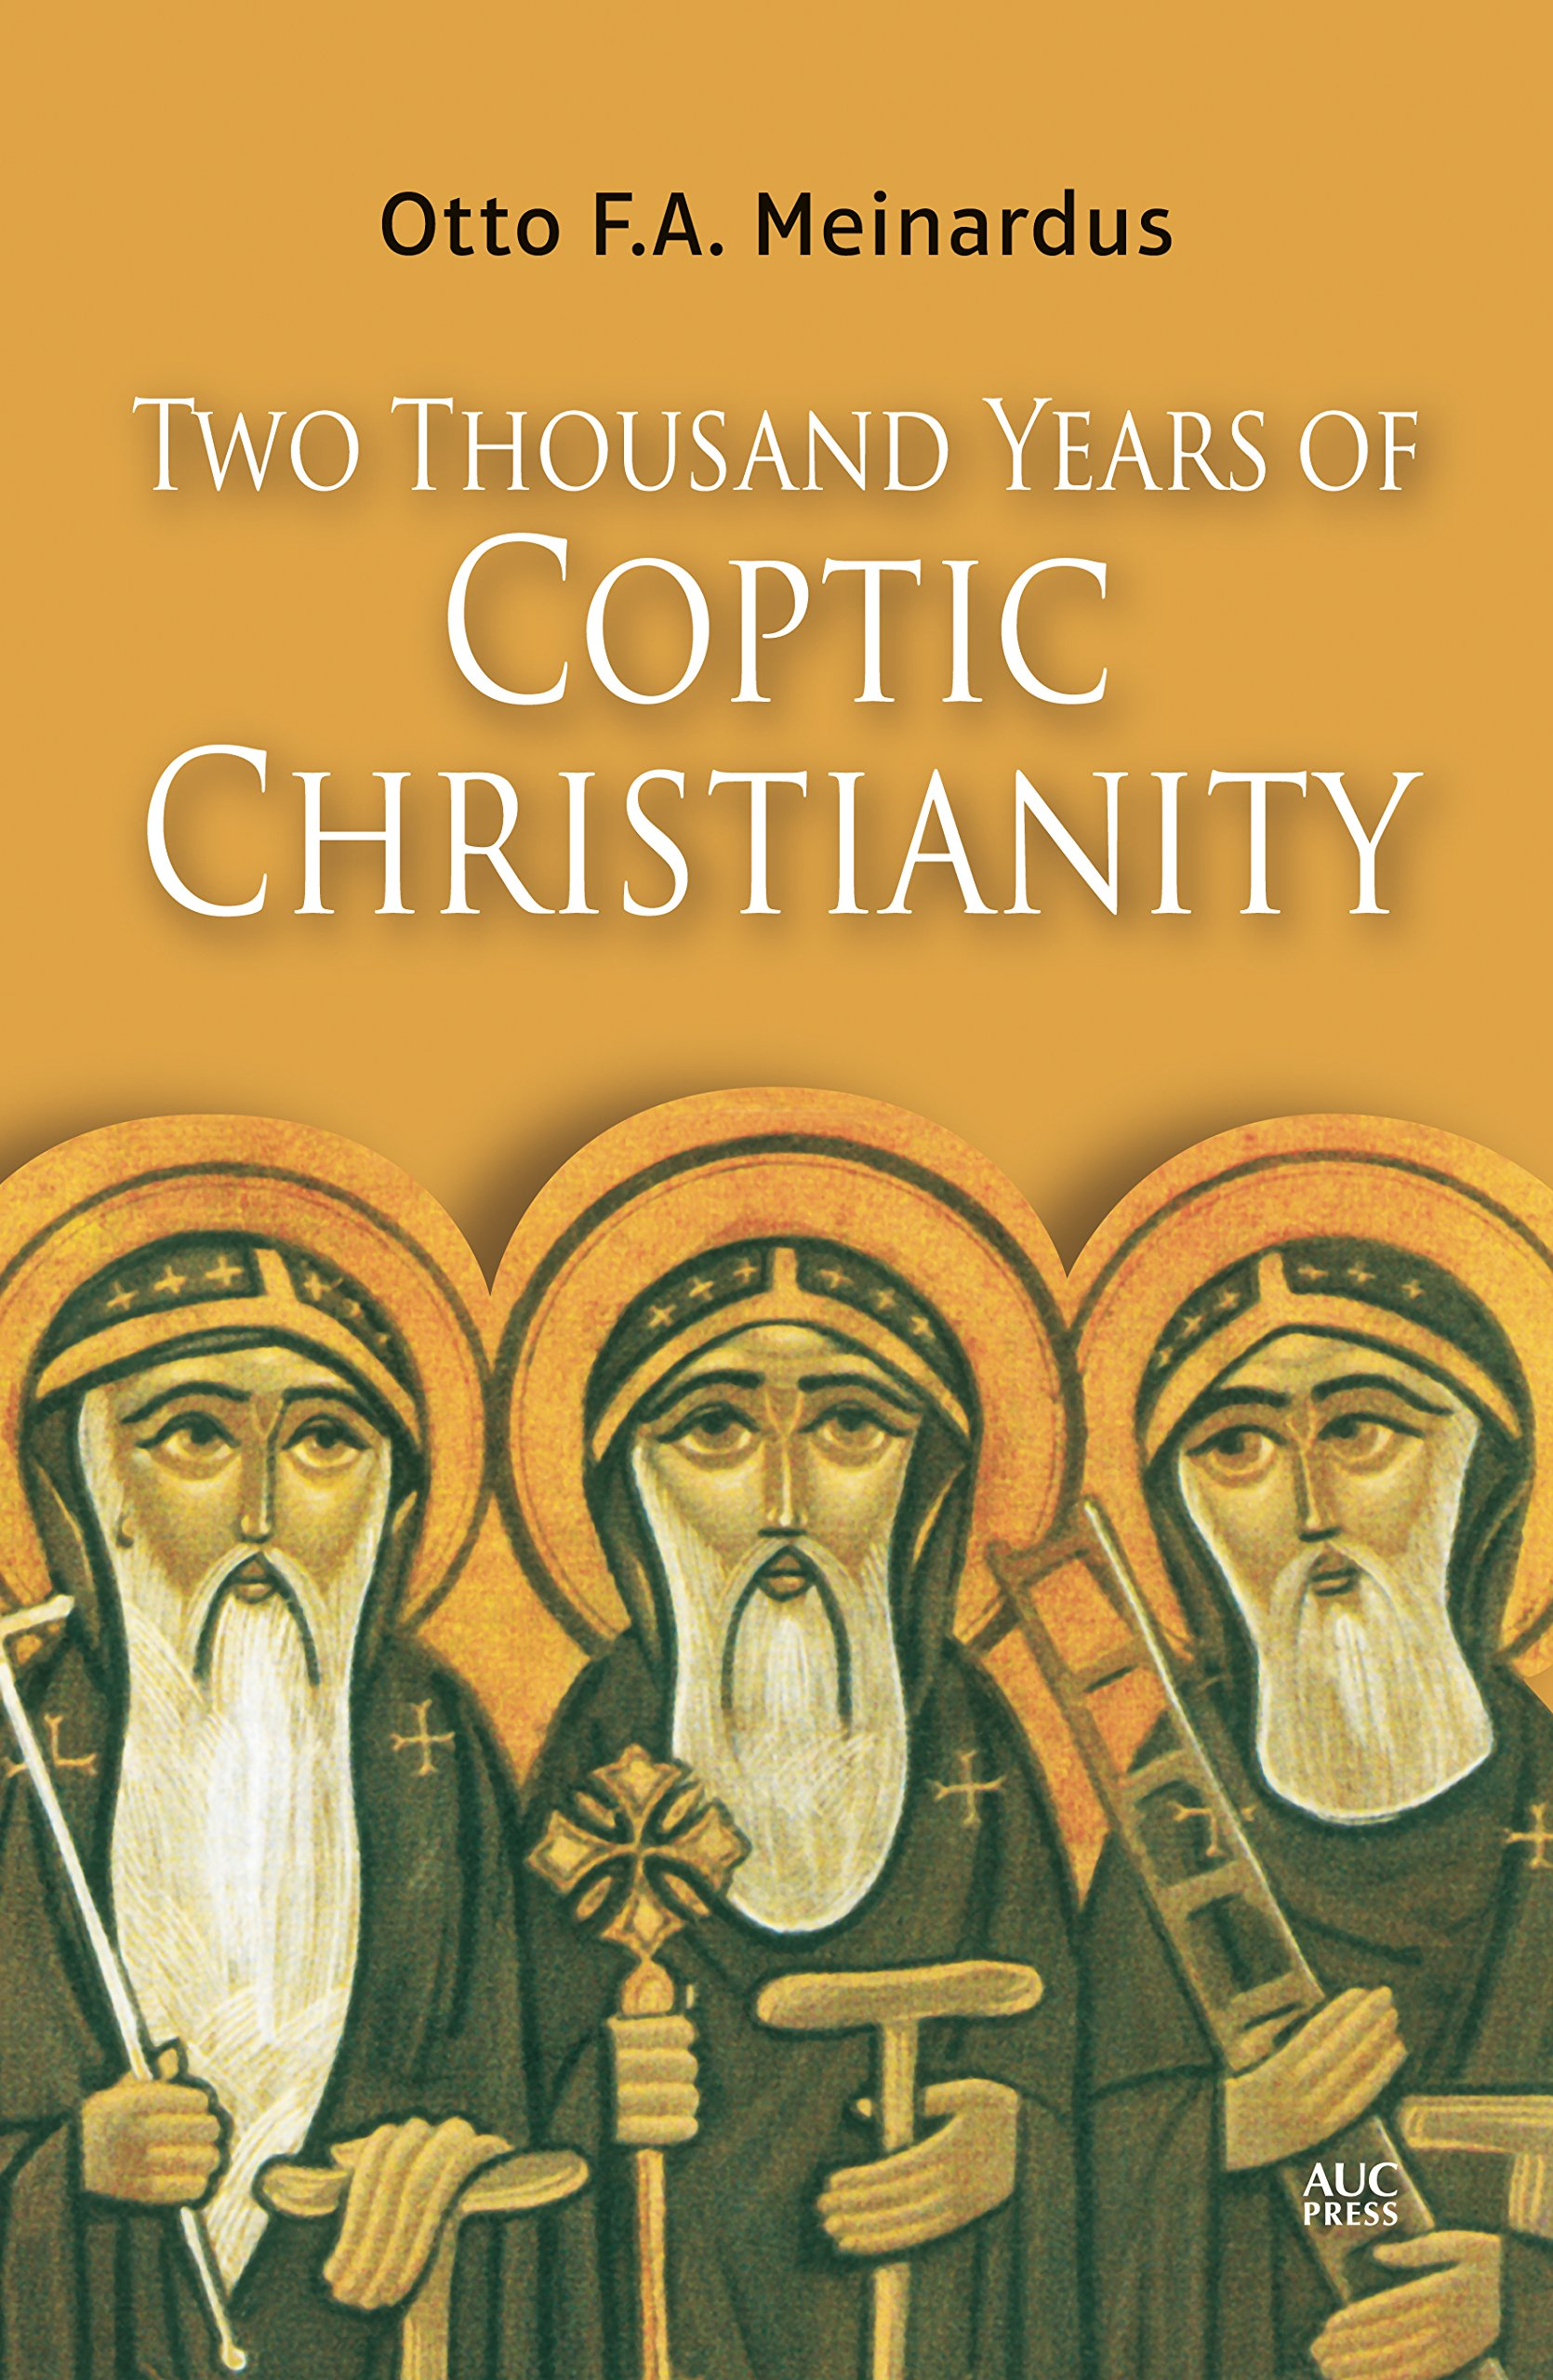 Two Thousand Years of Coptic Christianity